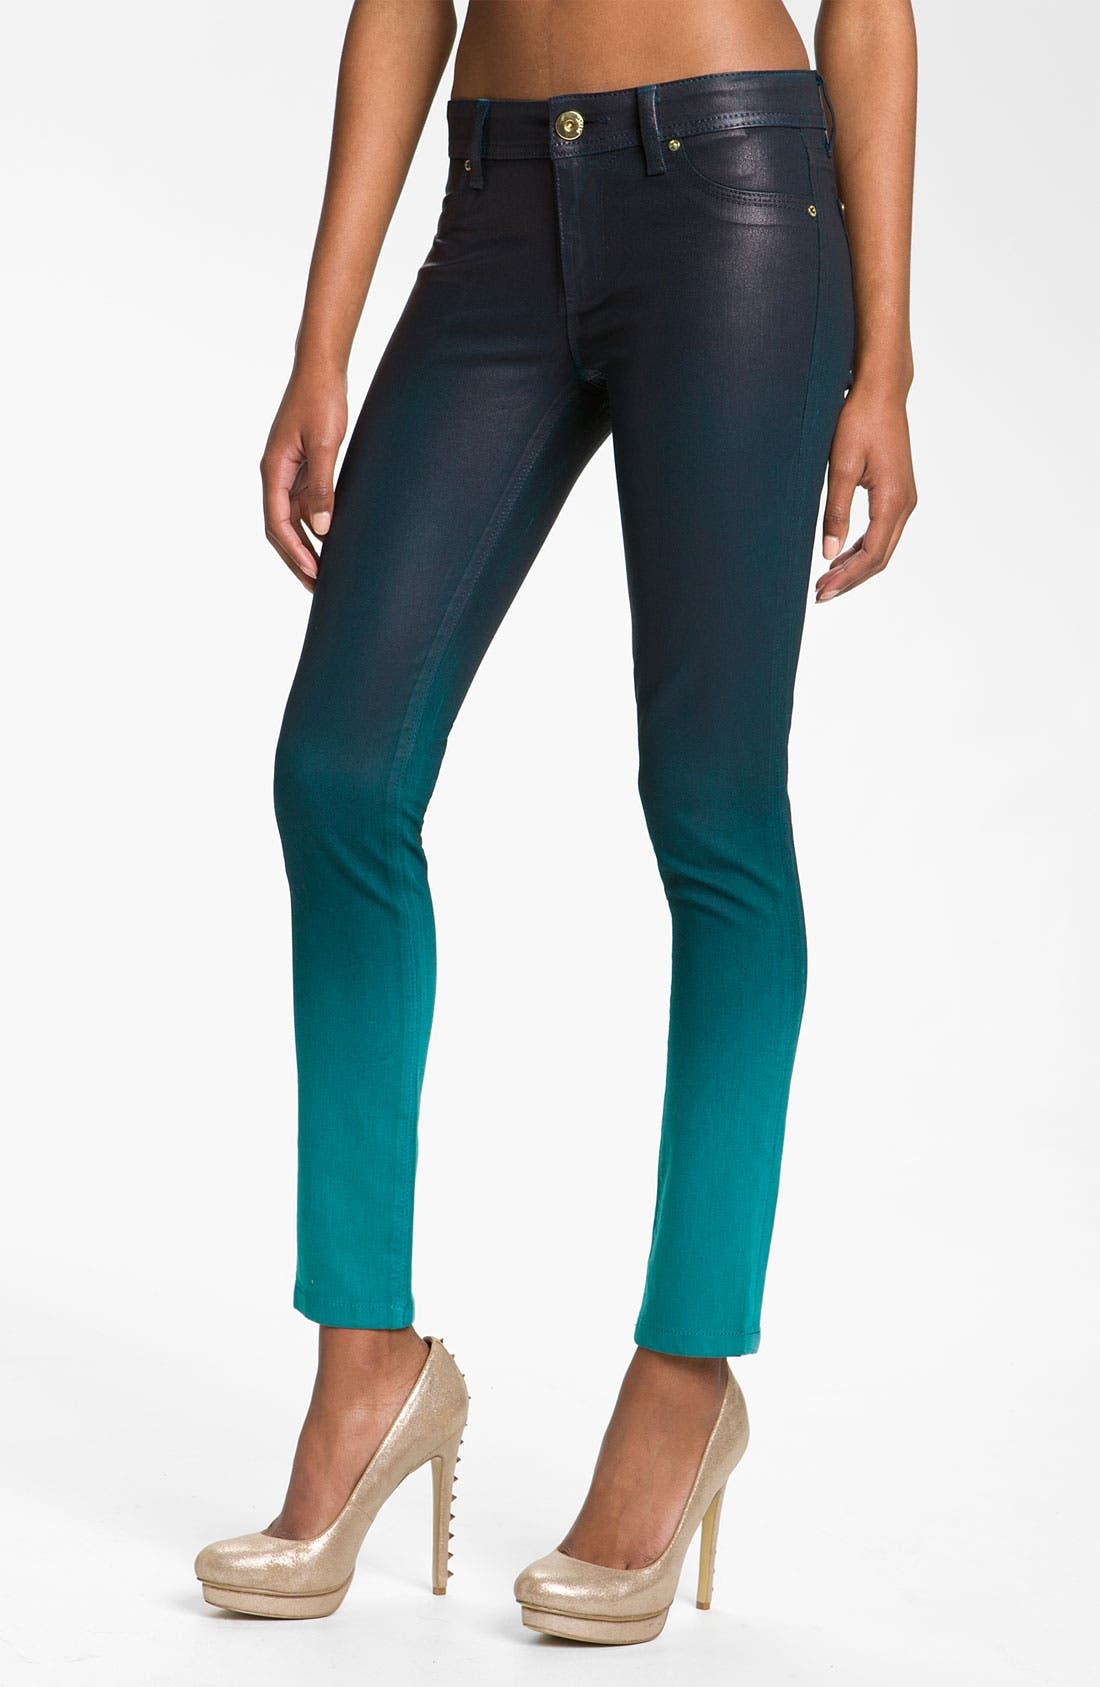 Alternate Image 1 Selected - DL1961 'Emma' Waxed Skinny Jeans (Bali)